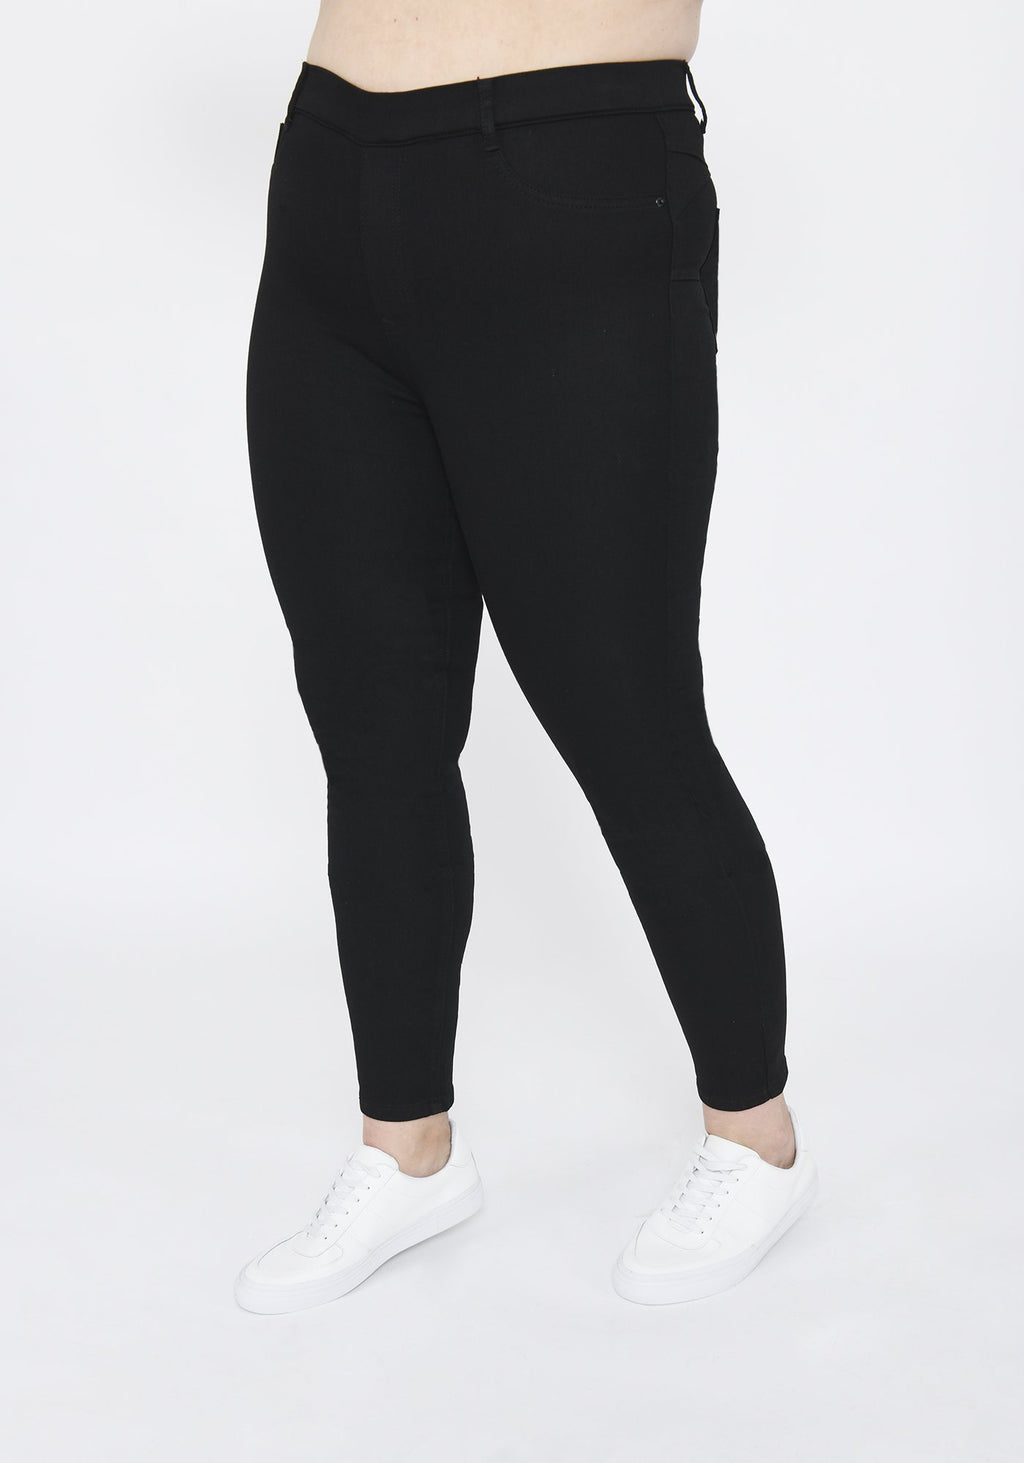 Plus Size Black Ankle Grazer Jeggings